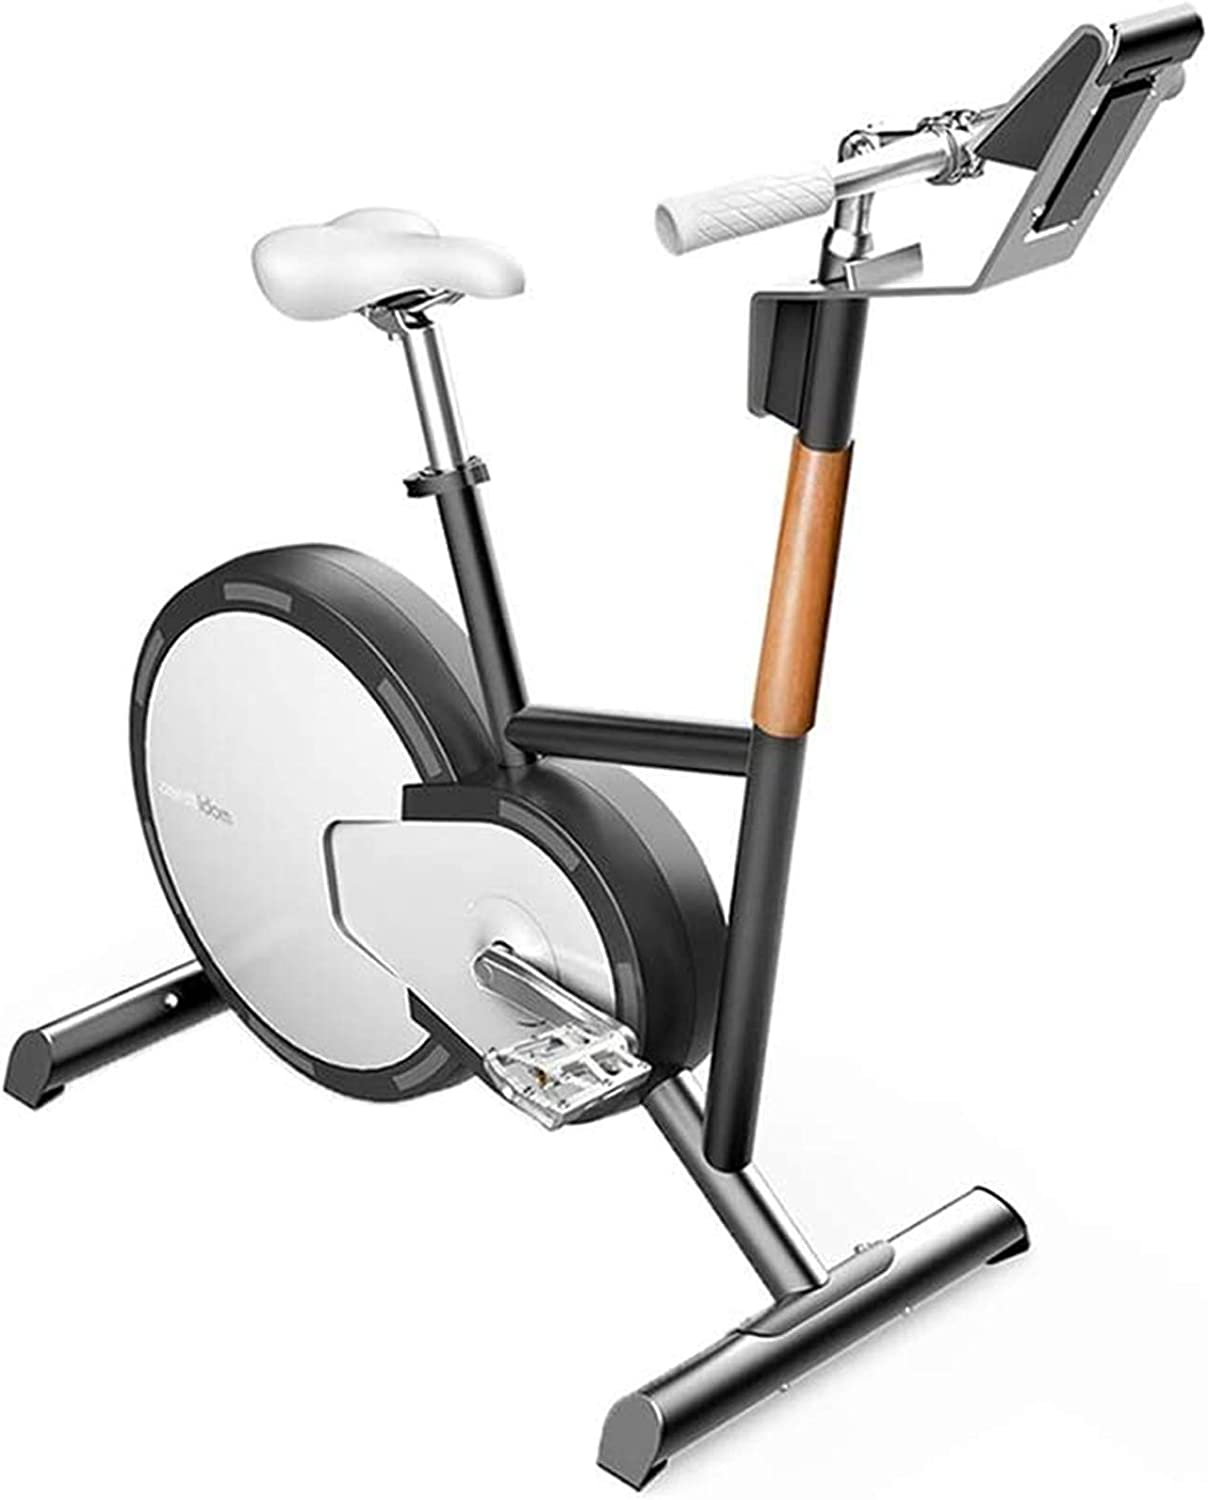 Max 86% OFF DELGC Spinning Bike Exercise Sport Easy-to-use Ultra-Quiet Indoor